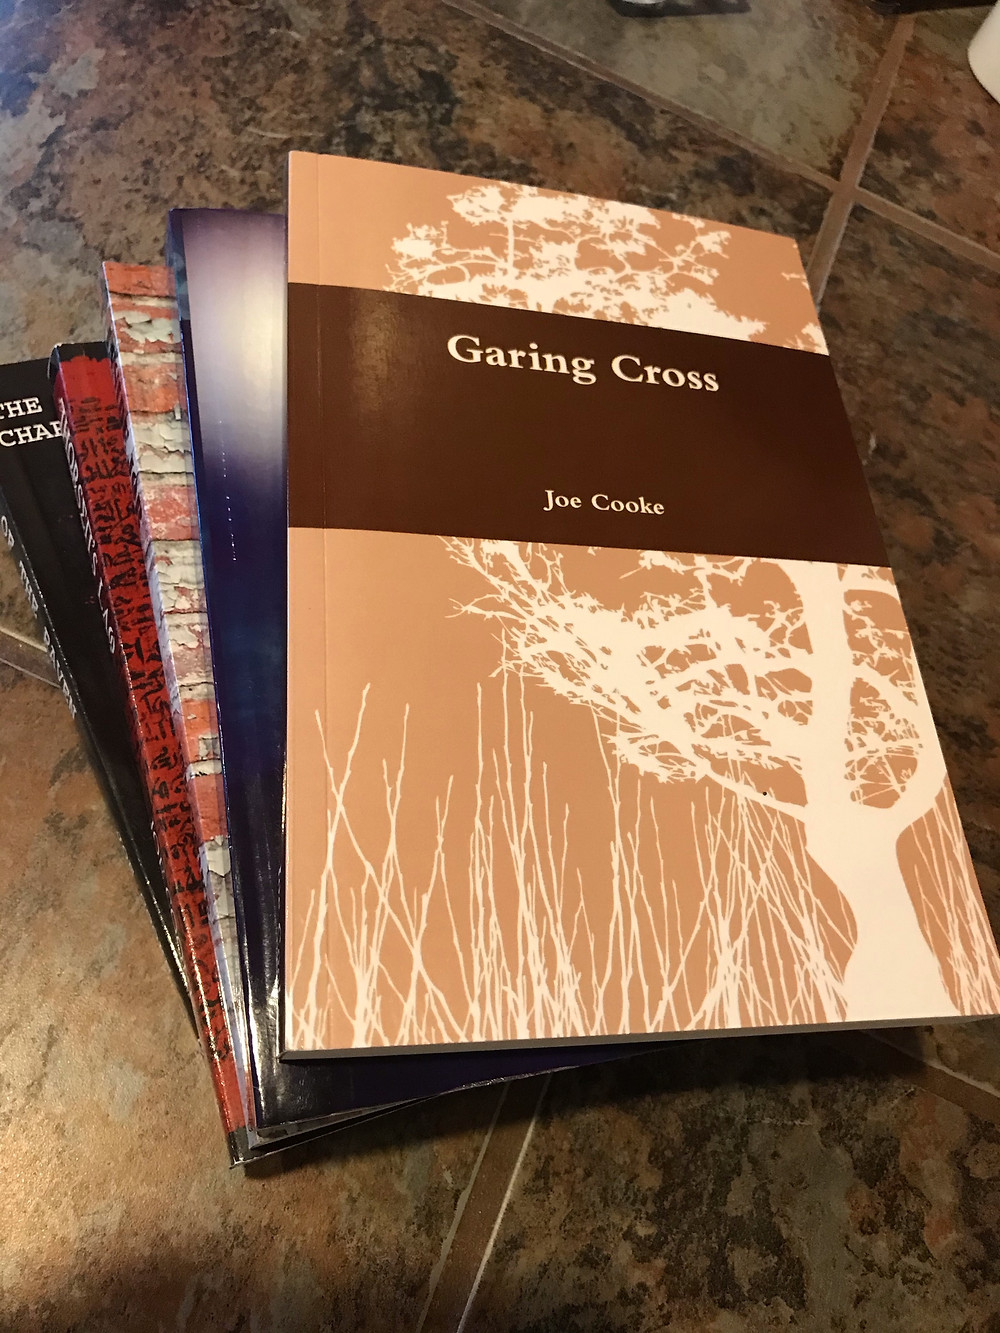 Garing Cross, by Joe Cooke (cover image)